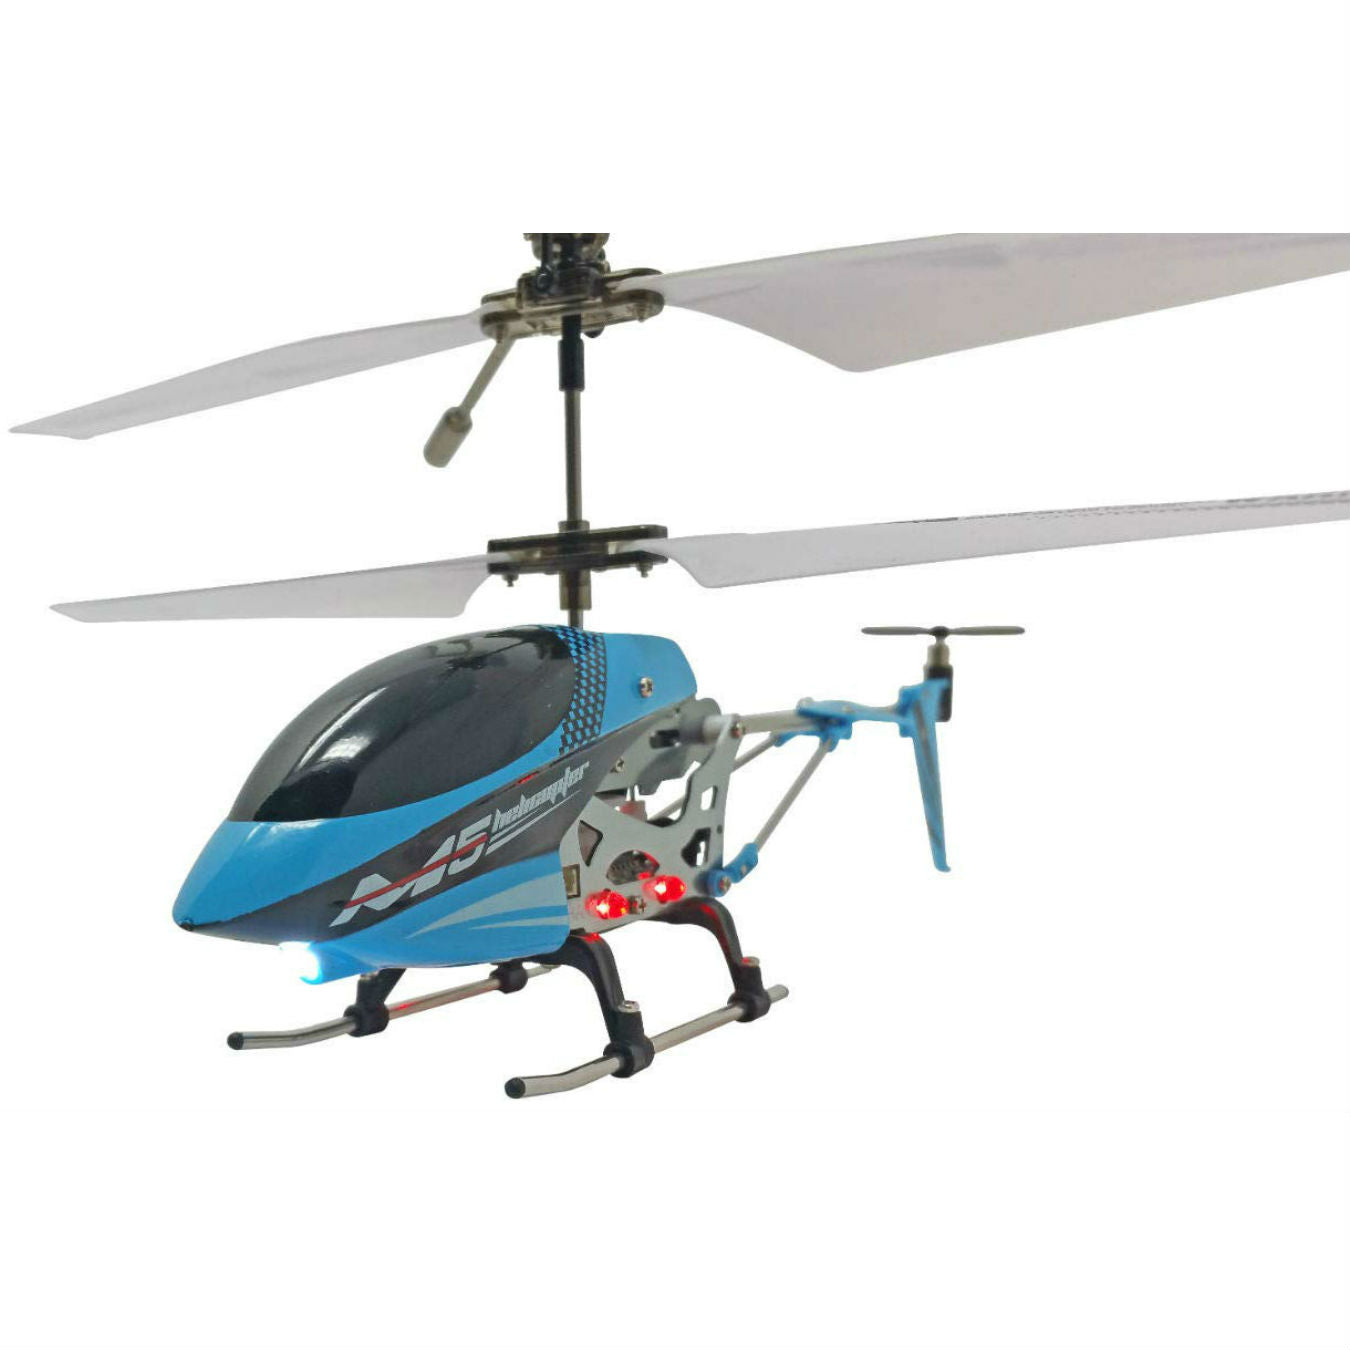 SkyCo M5 3 Channel RC Radio Mini Alloy Remote Control Helicopter with Gyro for Kids and Beginners (Blue)